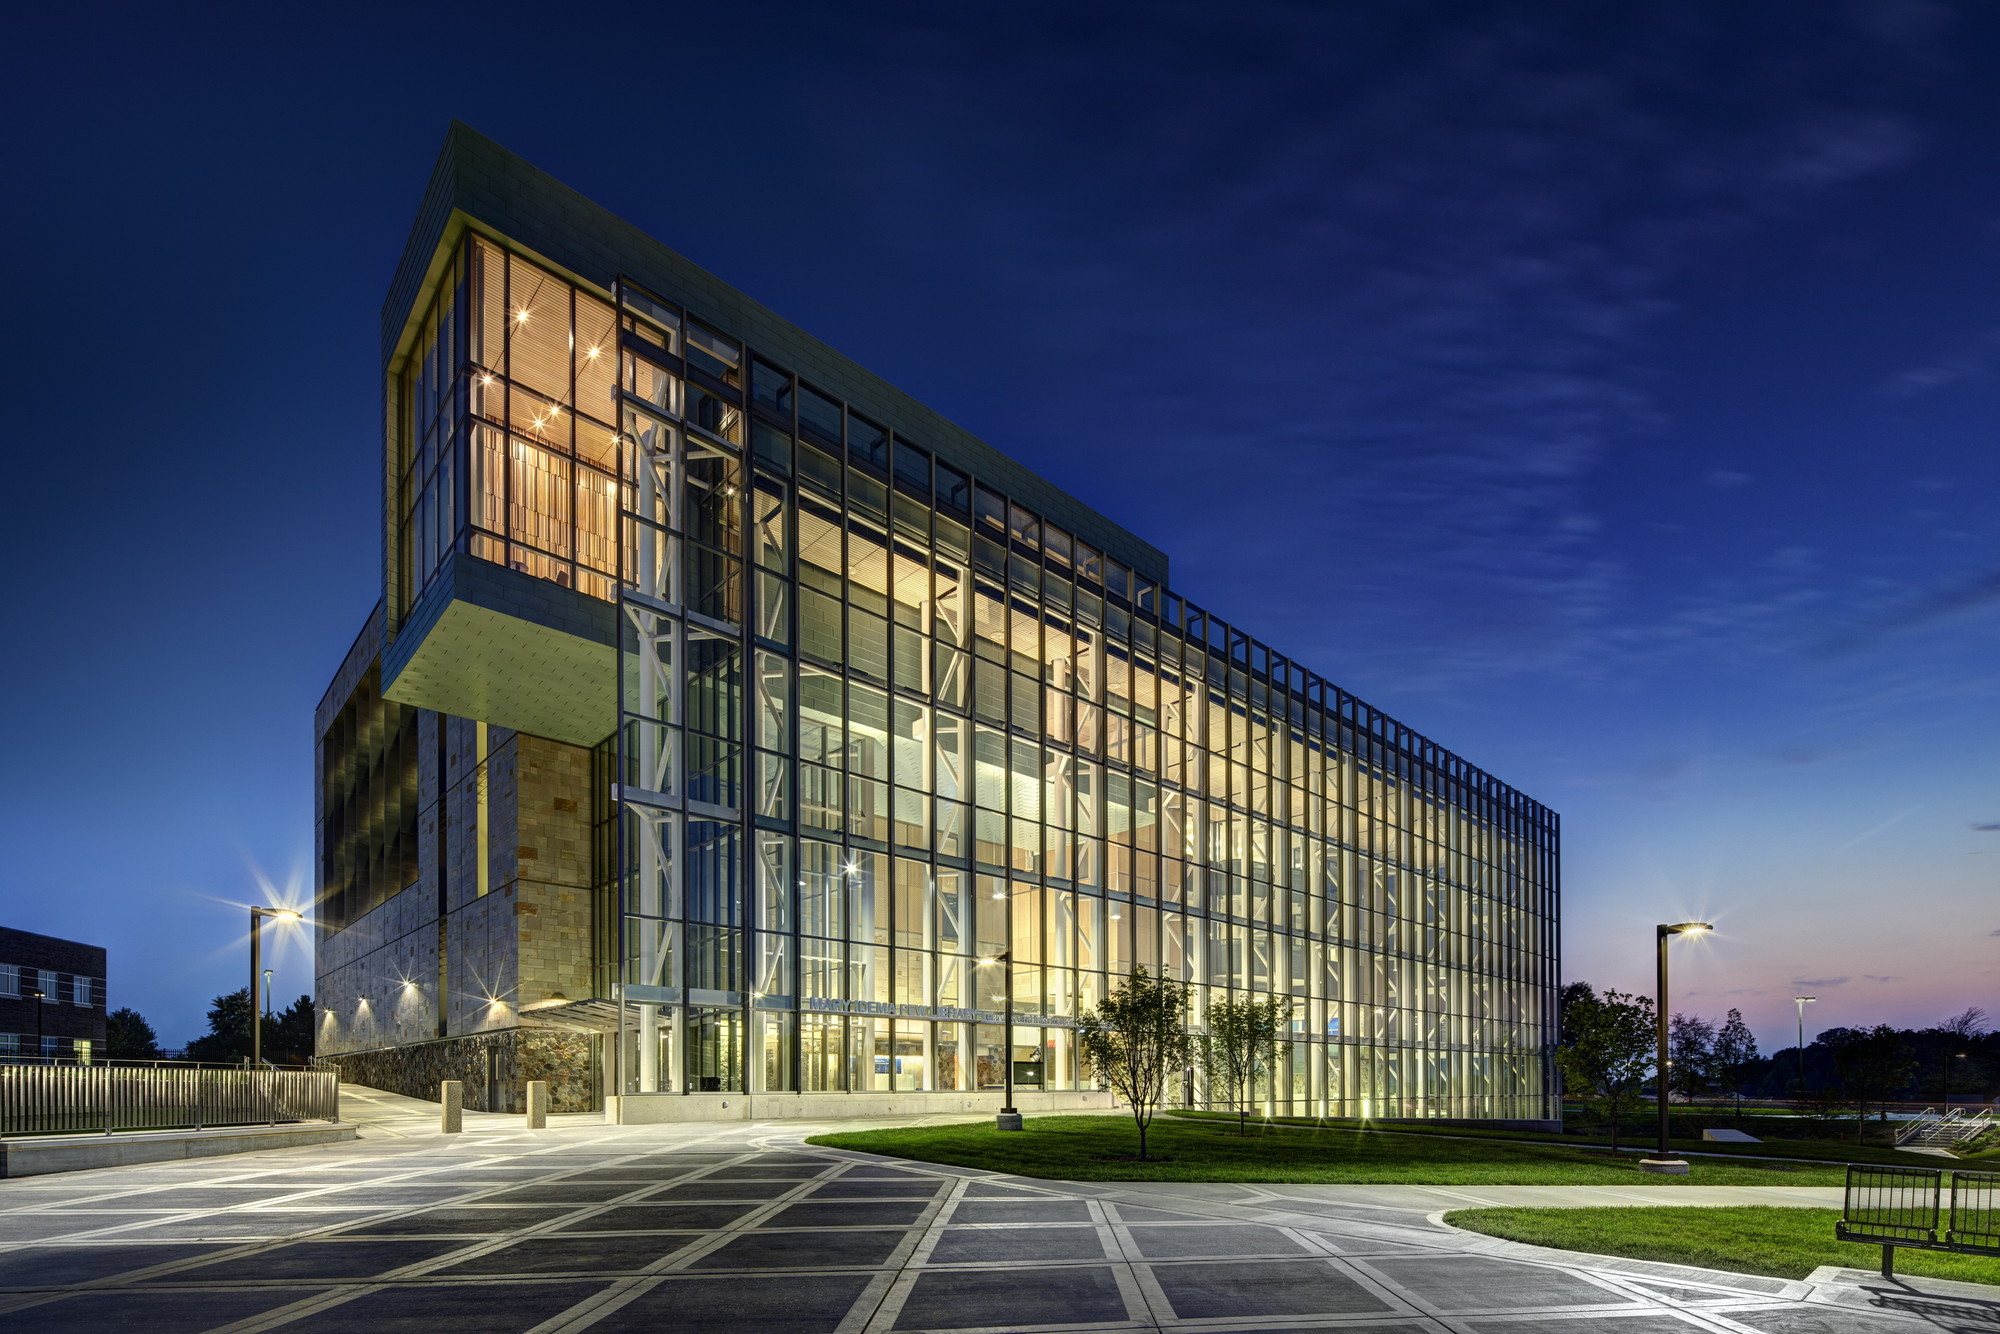 Gvsu Pew Library Stantec Archdaily